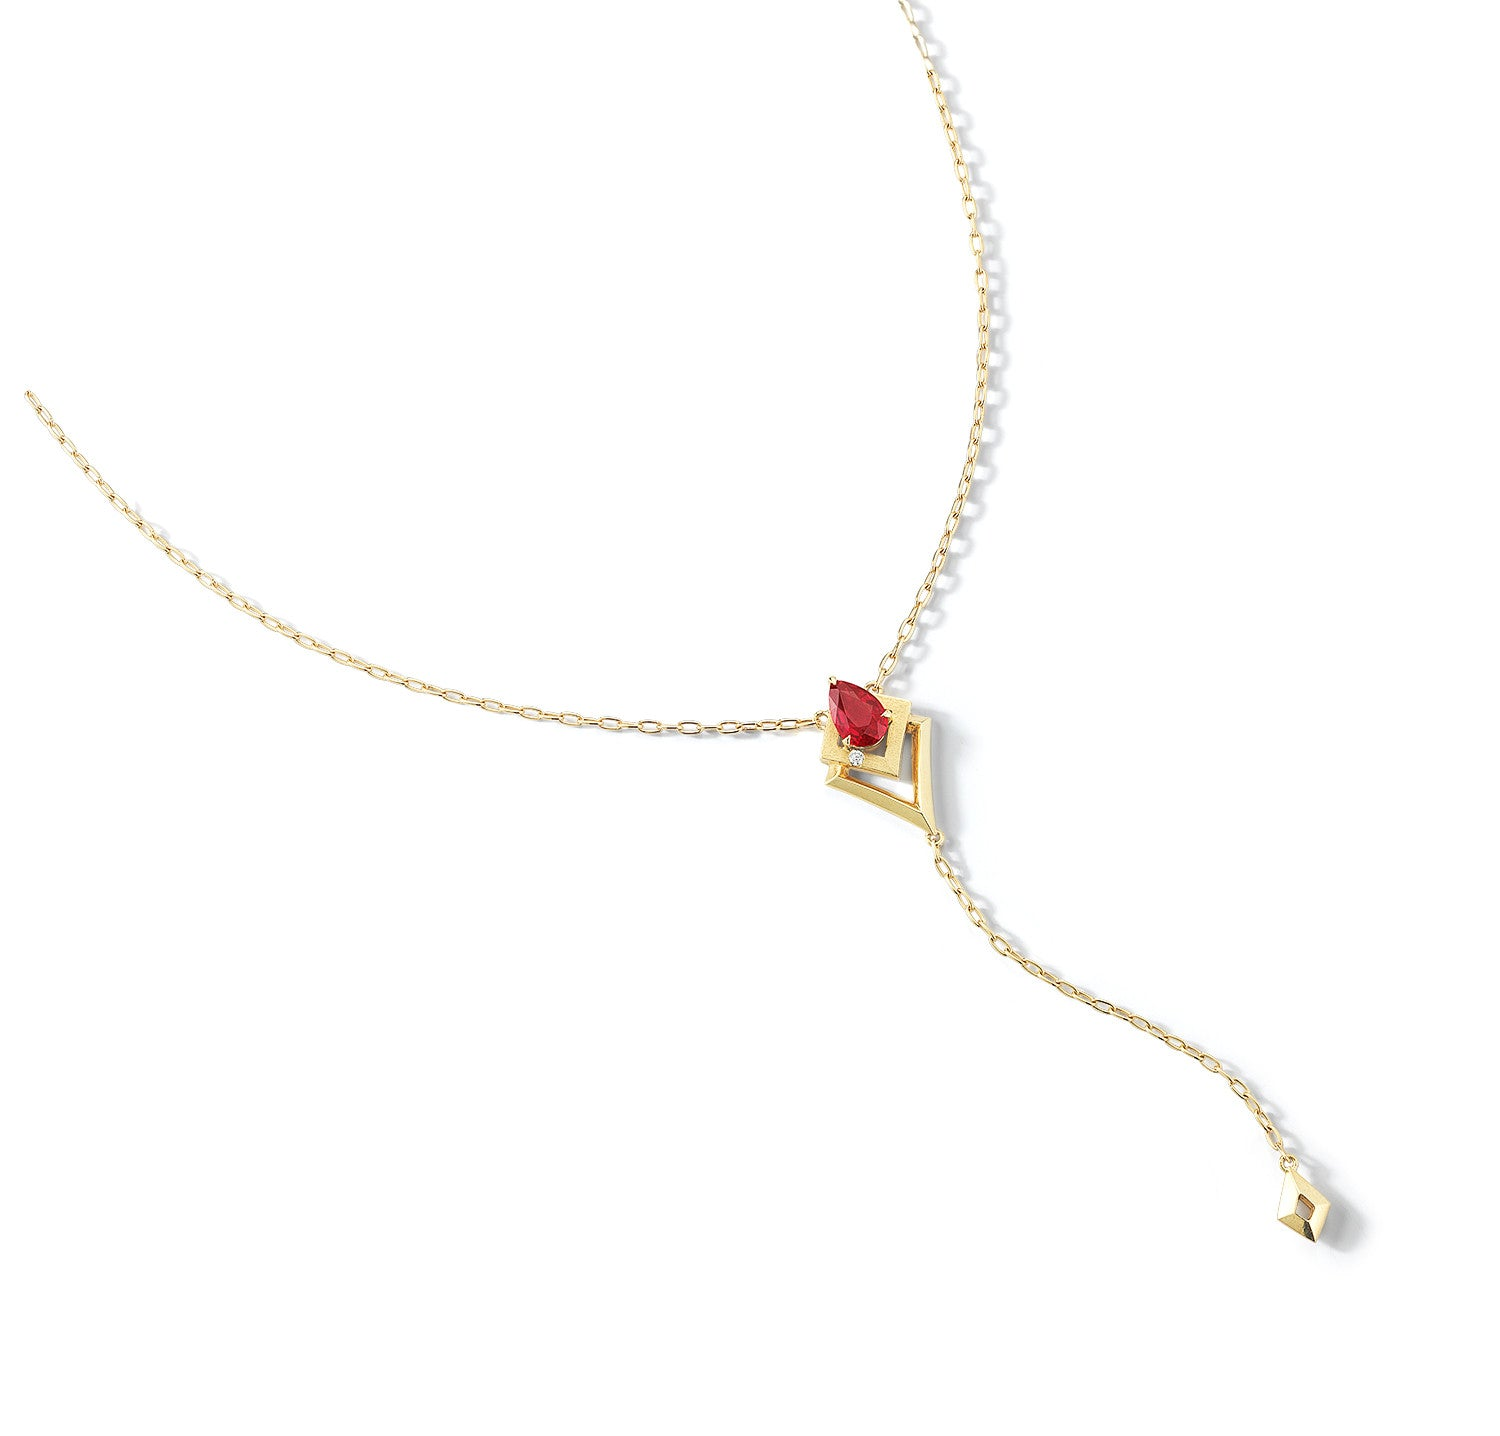 index ruby jewellery necklace jewelry diamond